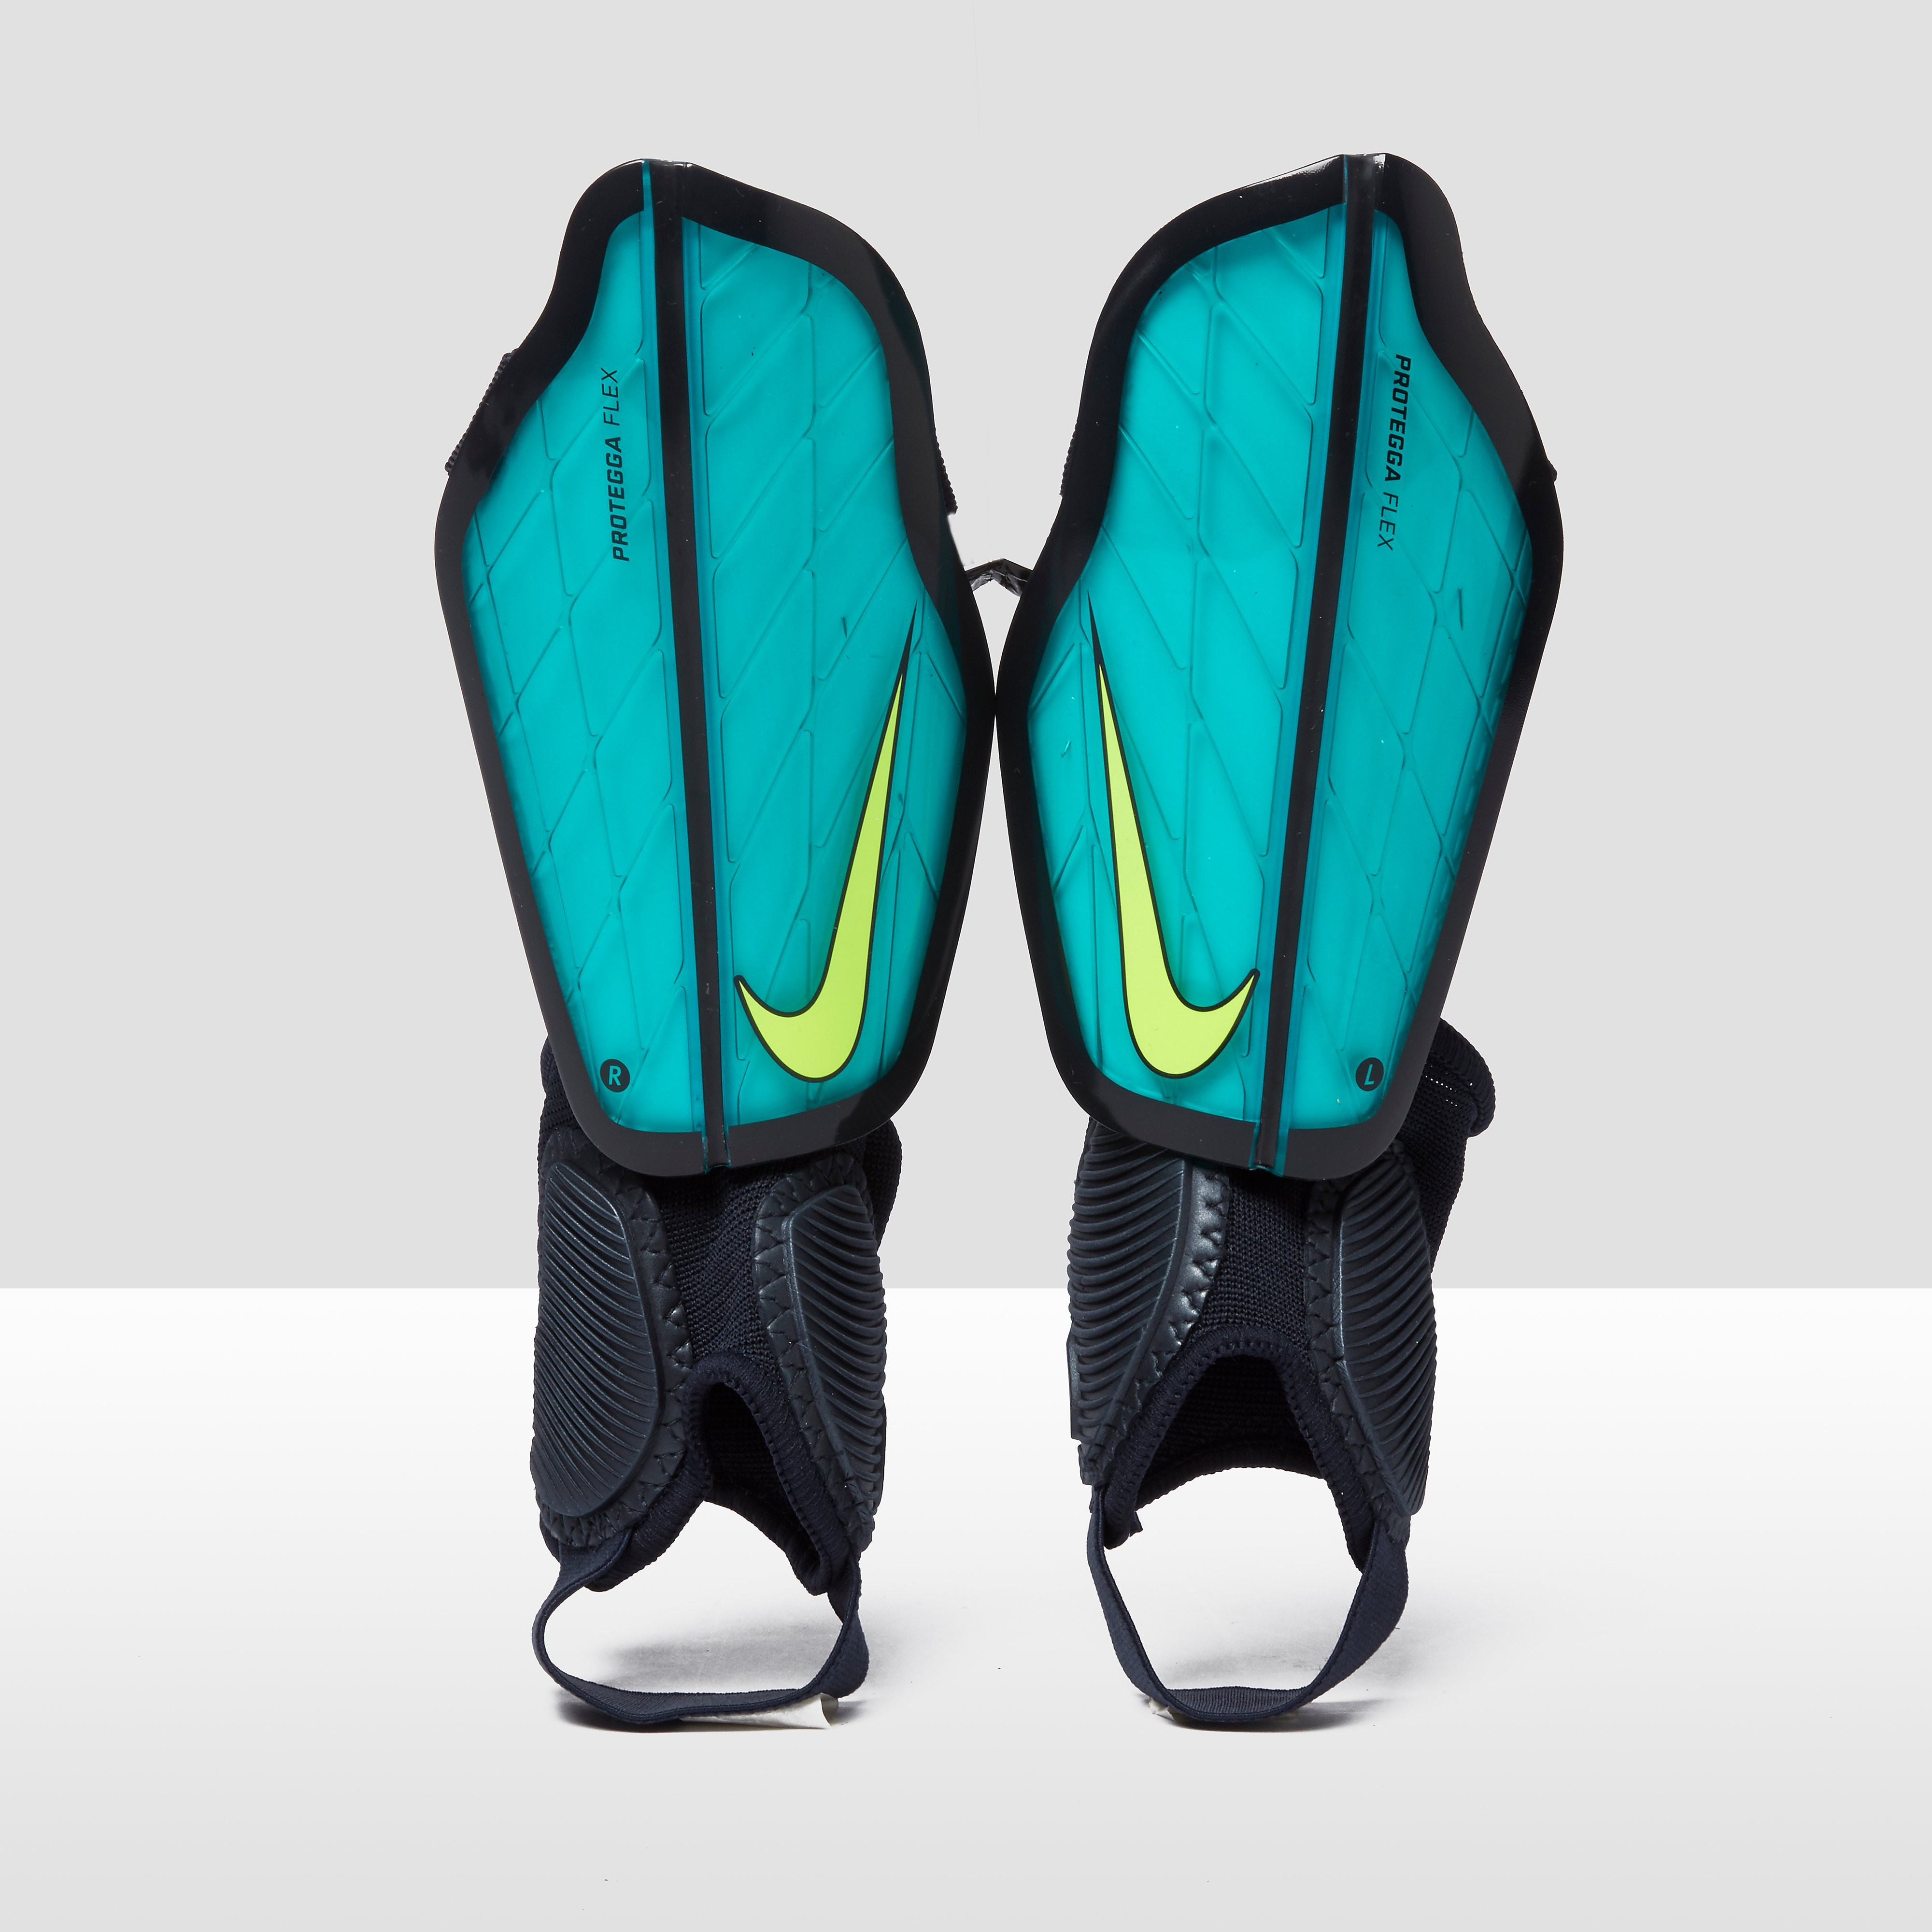 Nike Junior Protegga Flex Football Shin Guards